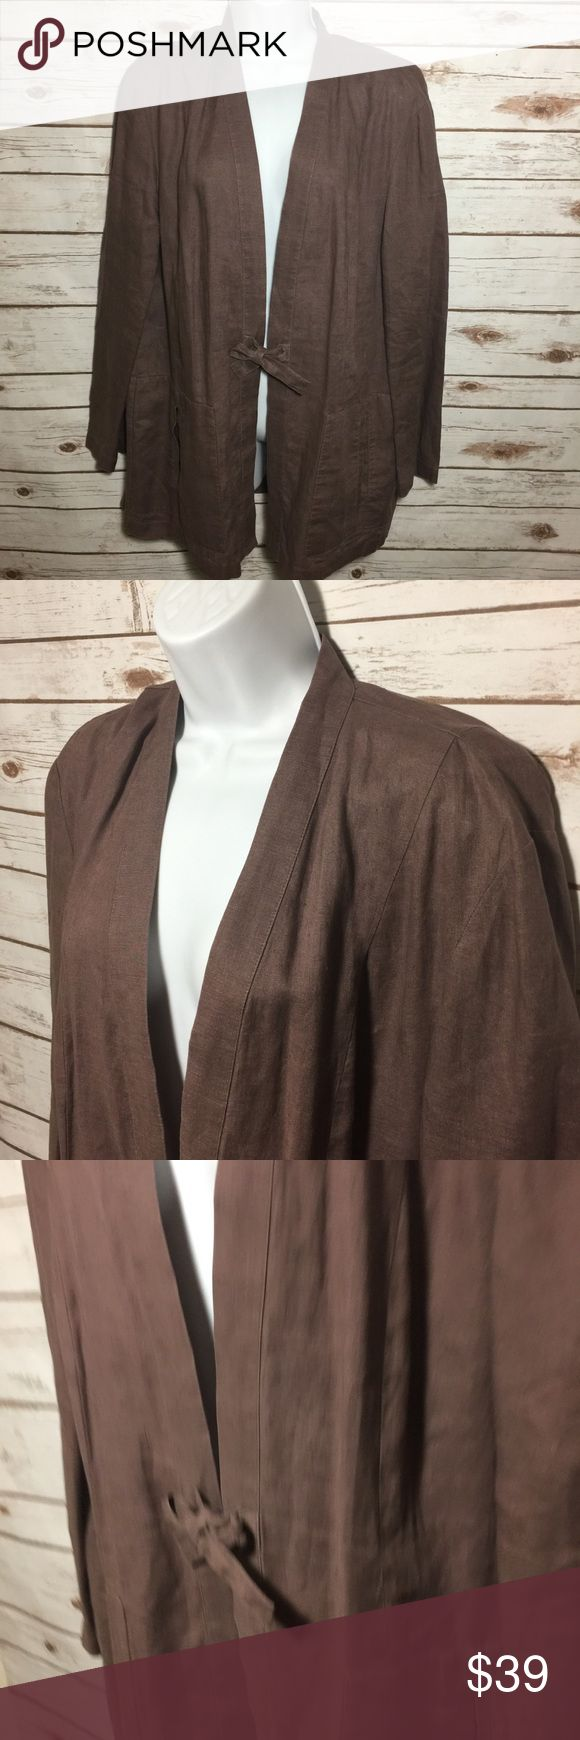 """Nordstrom 100% Linen Jacket Open Front Sz LARGE Nordstrom Brand 100% Linen Jacket Open Front Tie Mauve Purple Blazer Sz LARGE Size:  Large Material:  100% Linen Color:  Purple Mauve Measurements:  Length 32"""" / Sleeve Length 23.5"""" / Shoulder to Shoulder 17"""" / Back (pit to pit) 23"""" Condition: Excellent pre-owned condition. No holes, no stains, no flaws. Country of Manufacturer:  China Stock Number:  MC.1017 Nordstrom Jackets & Coats"""